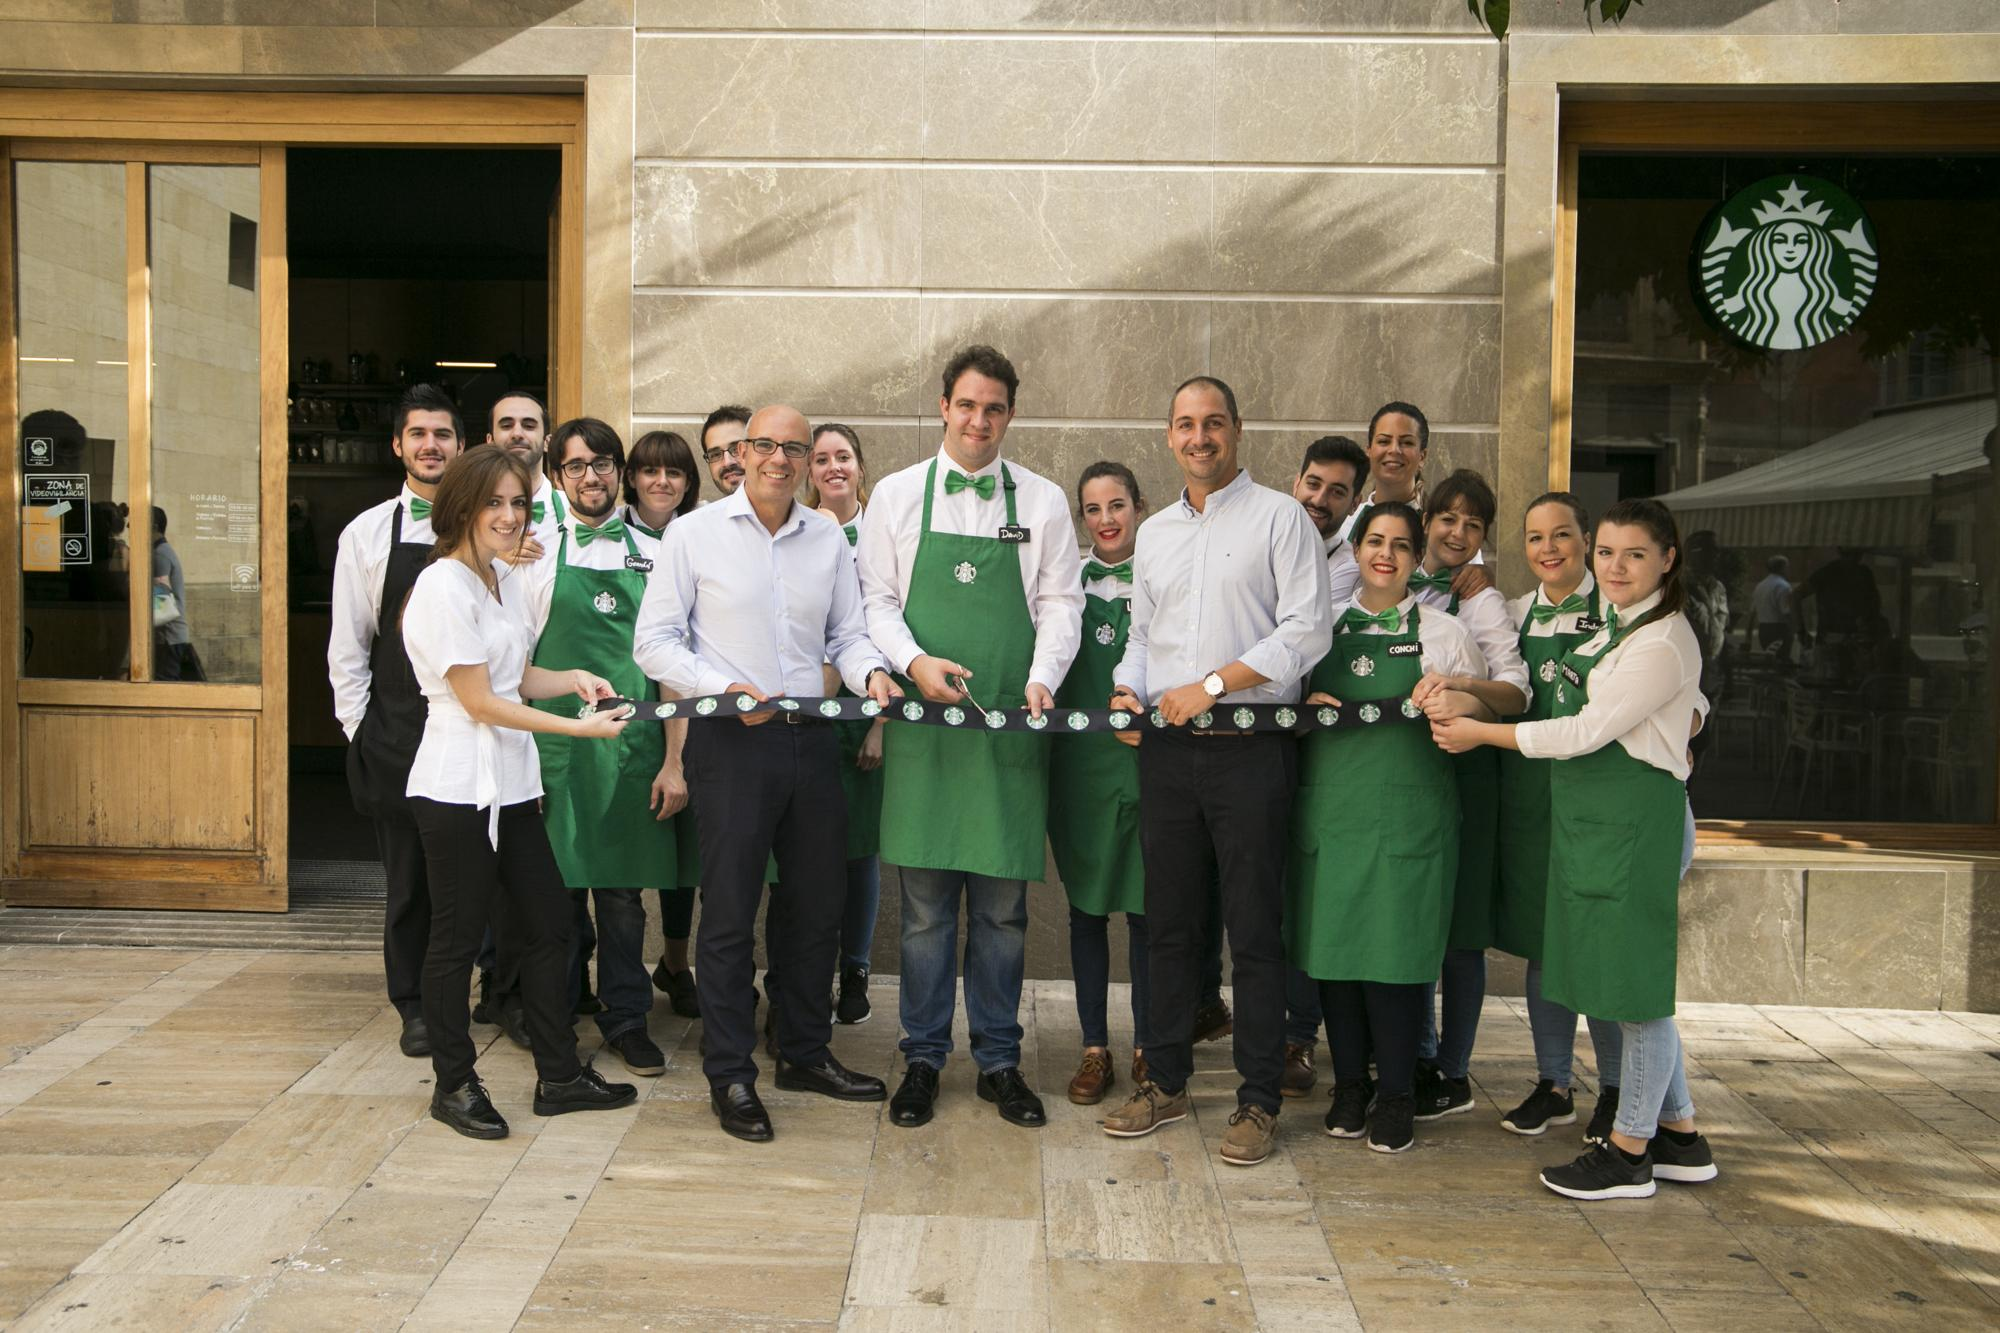 Starbucks arrives at Plaza Cardenal Belluga